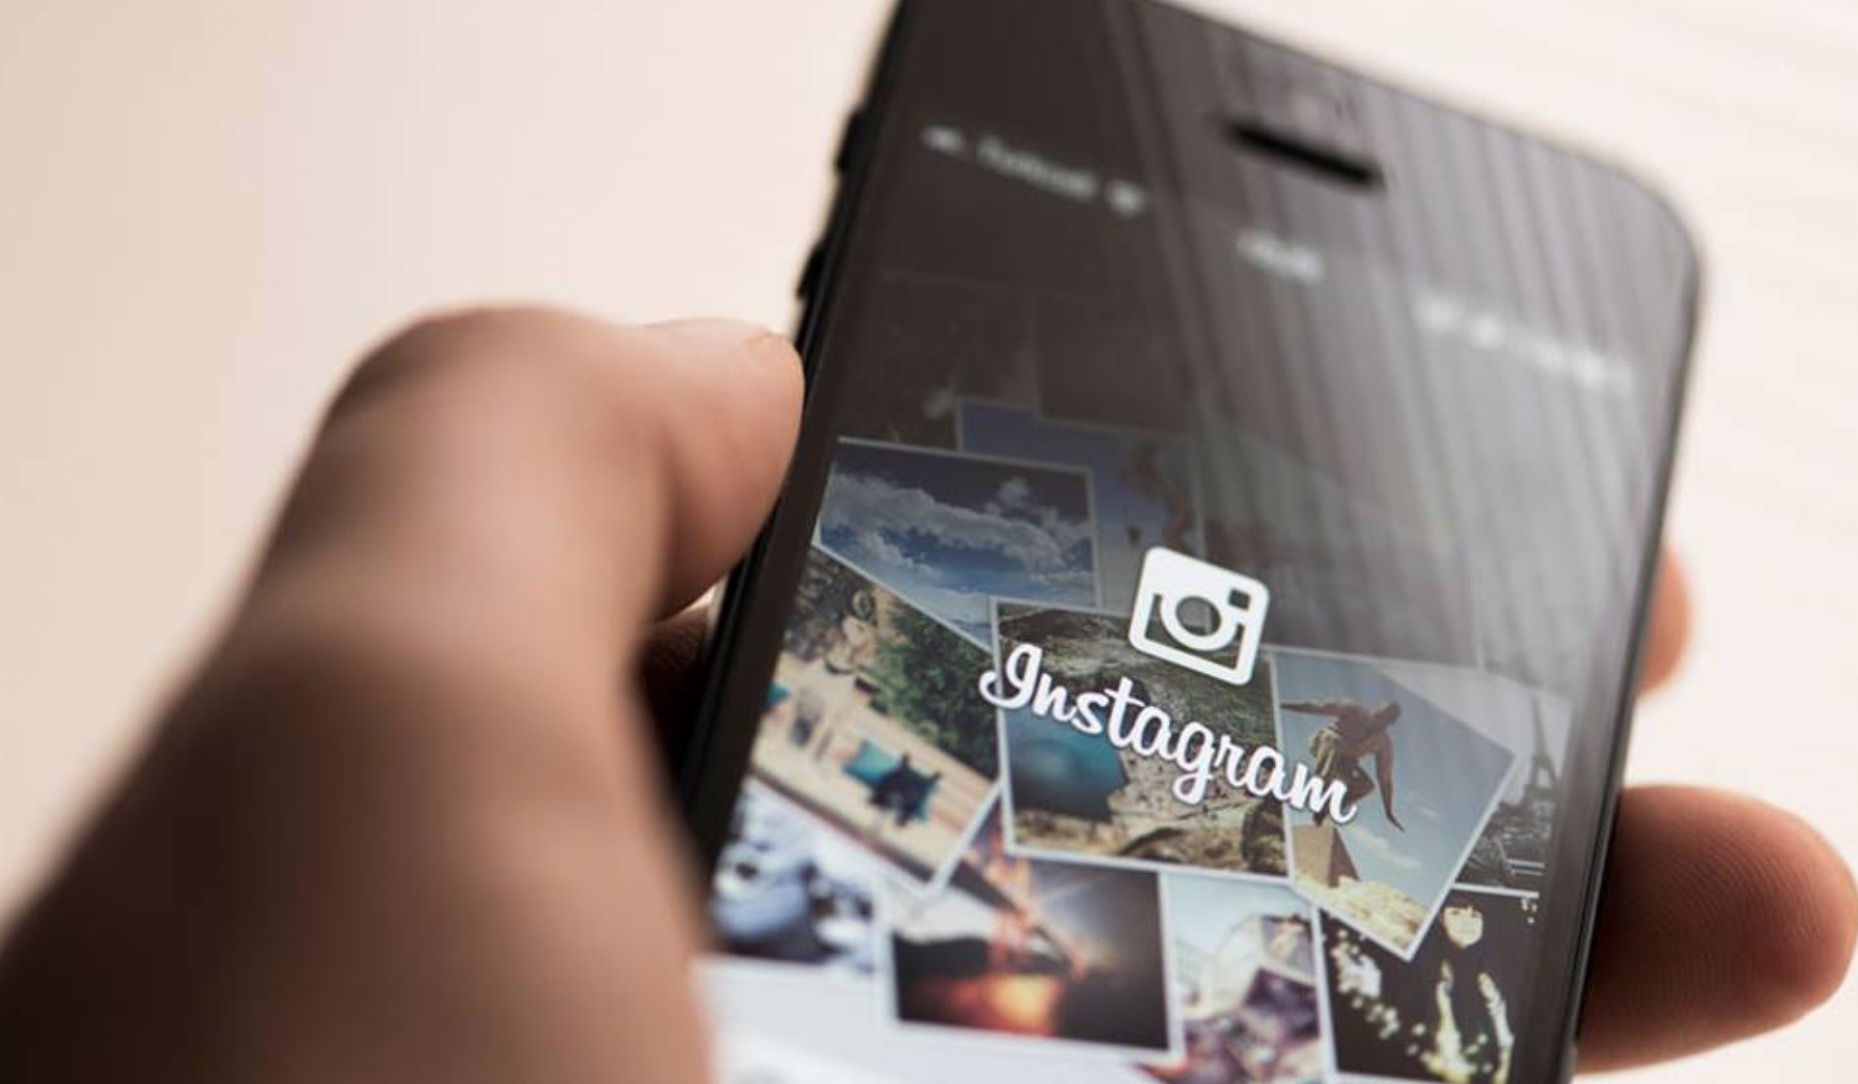 Instagram, arriva la funzione Live Video Sharing con amici